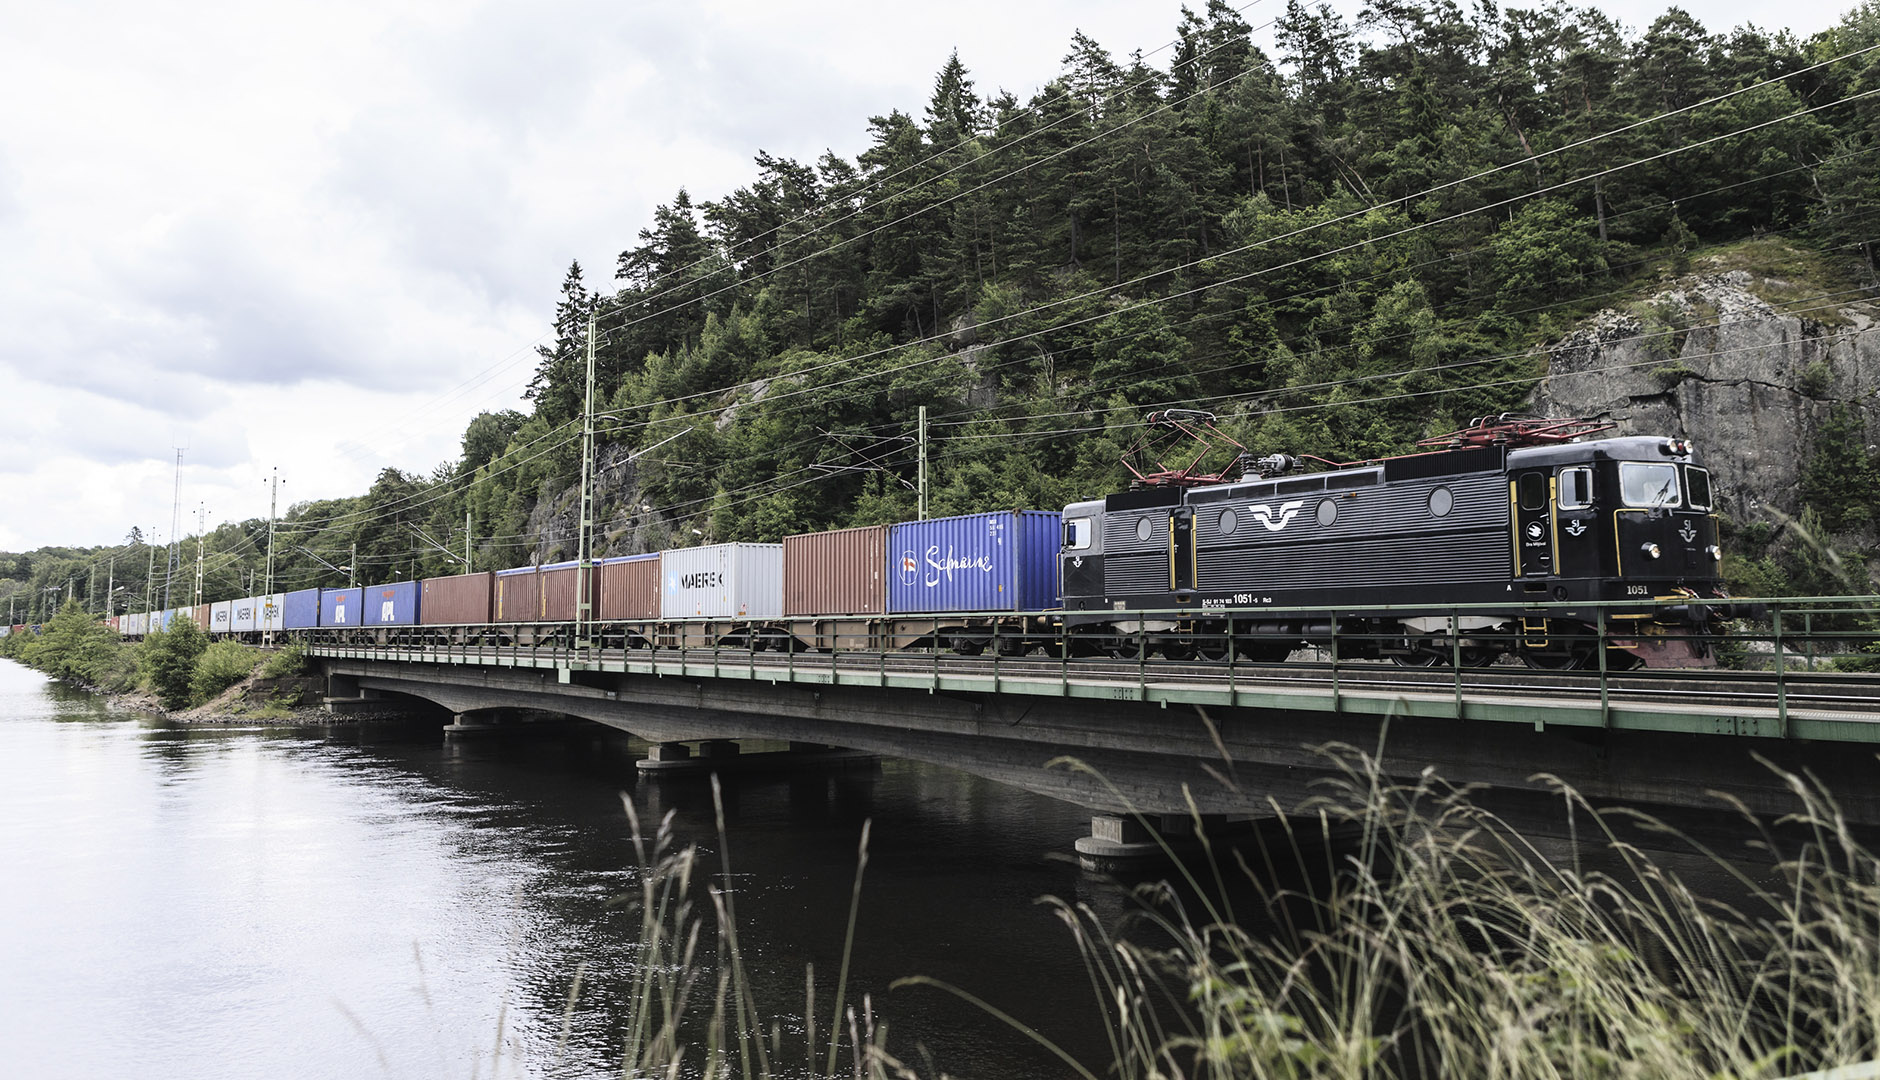 Around 70 freight trains operate to and from Gothenburg's port each day